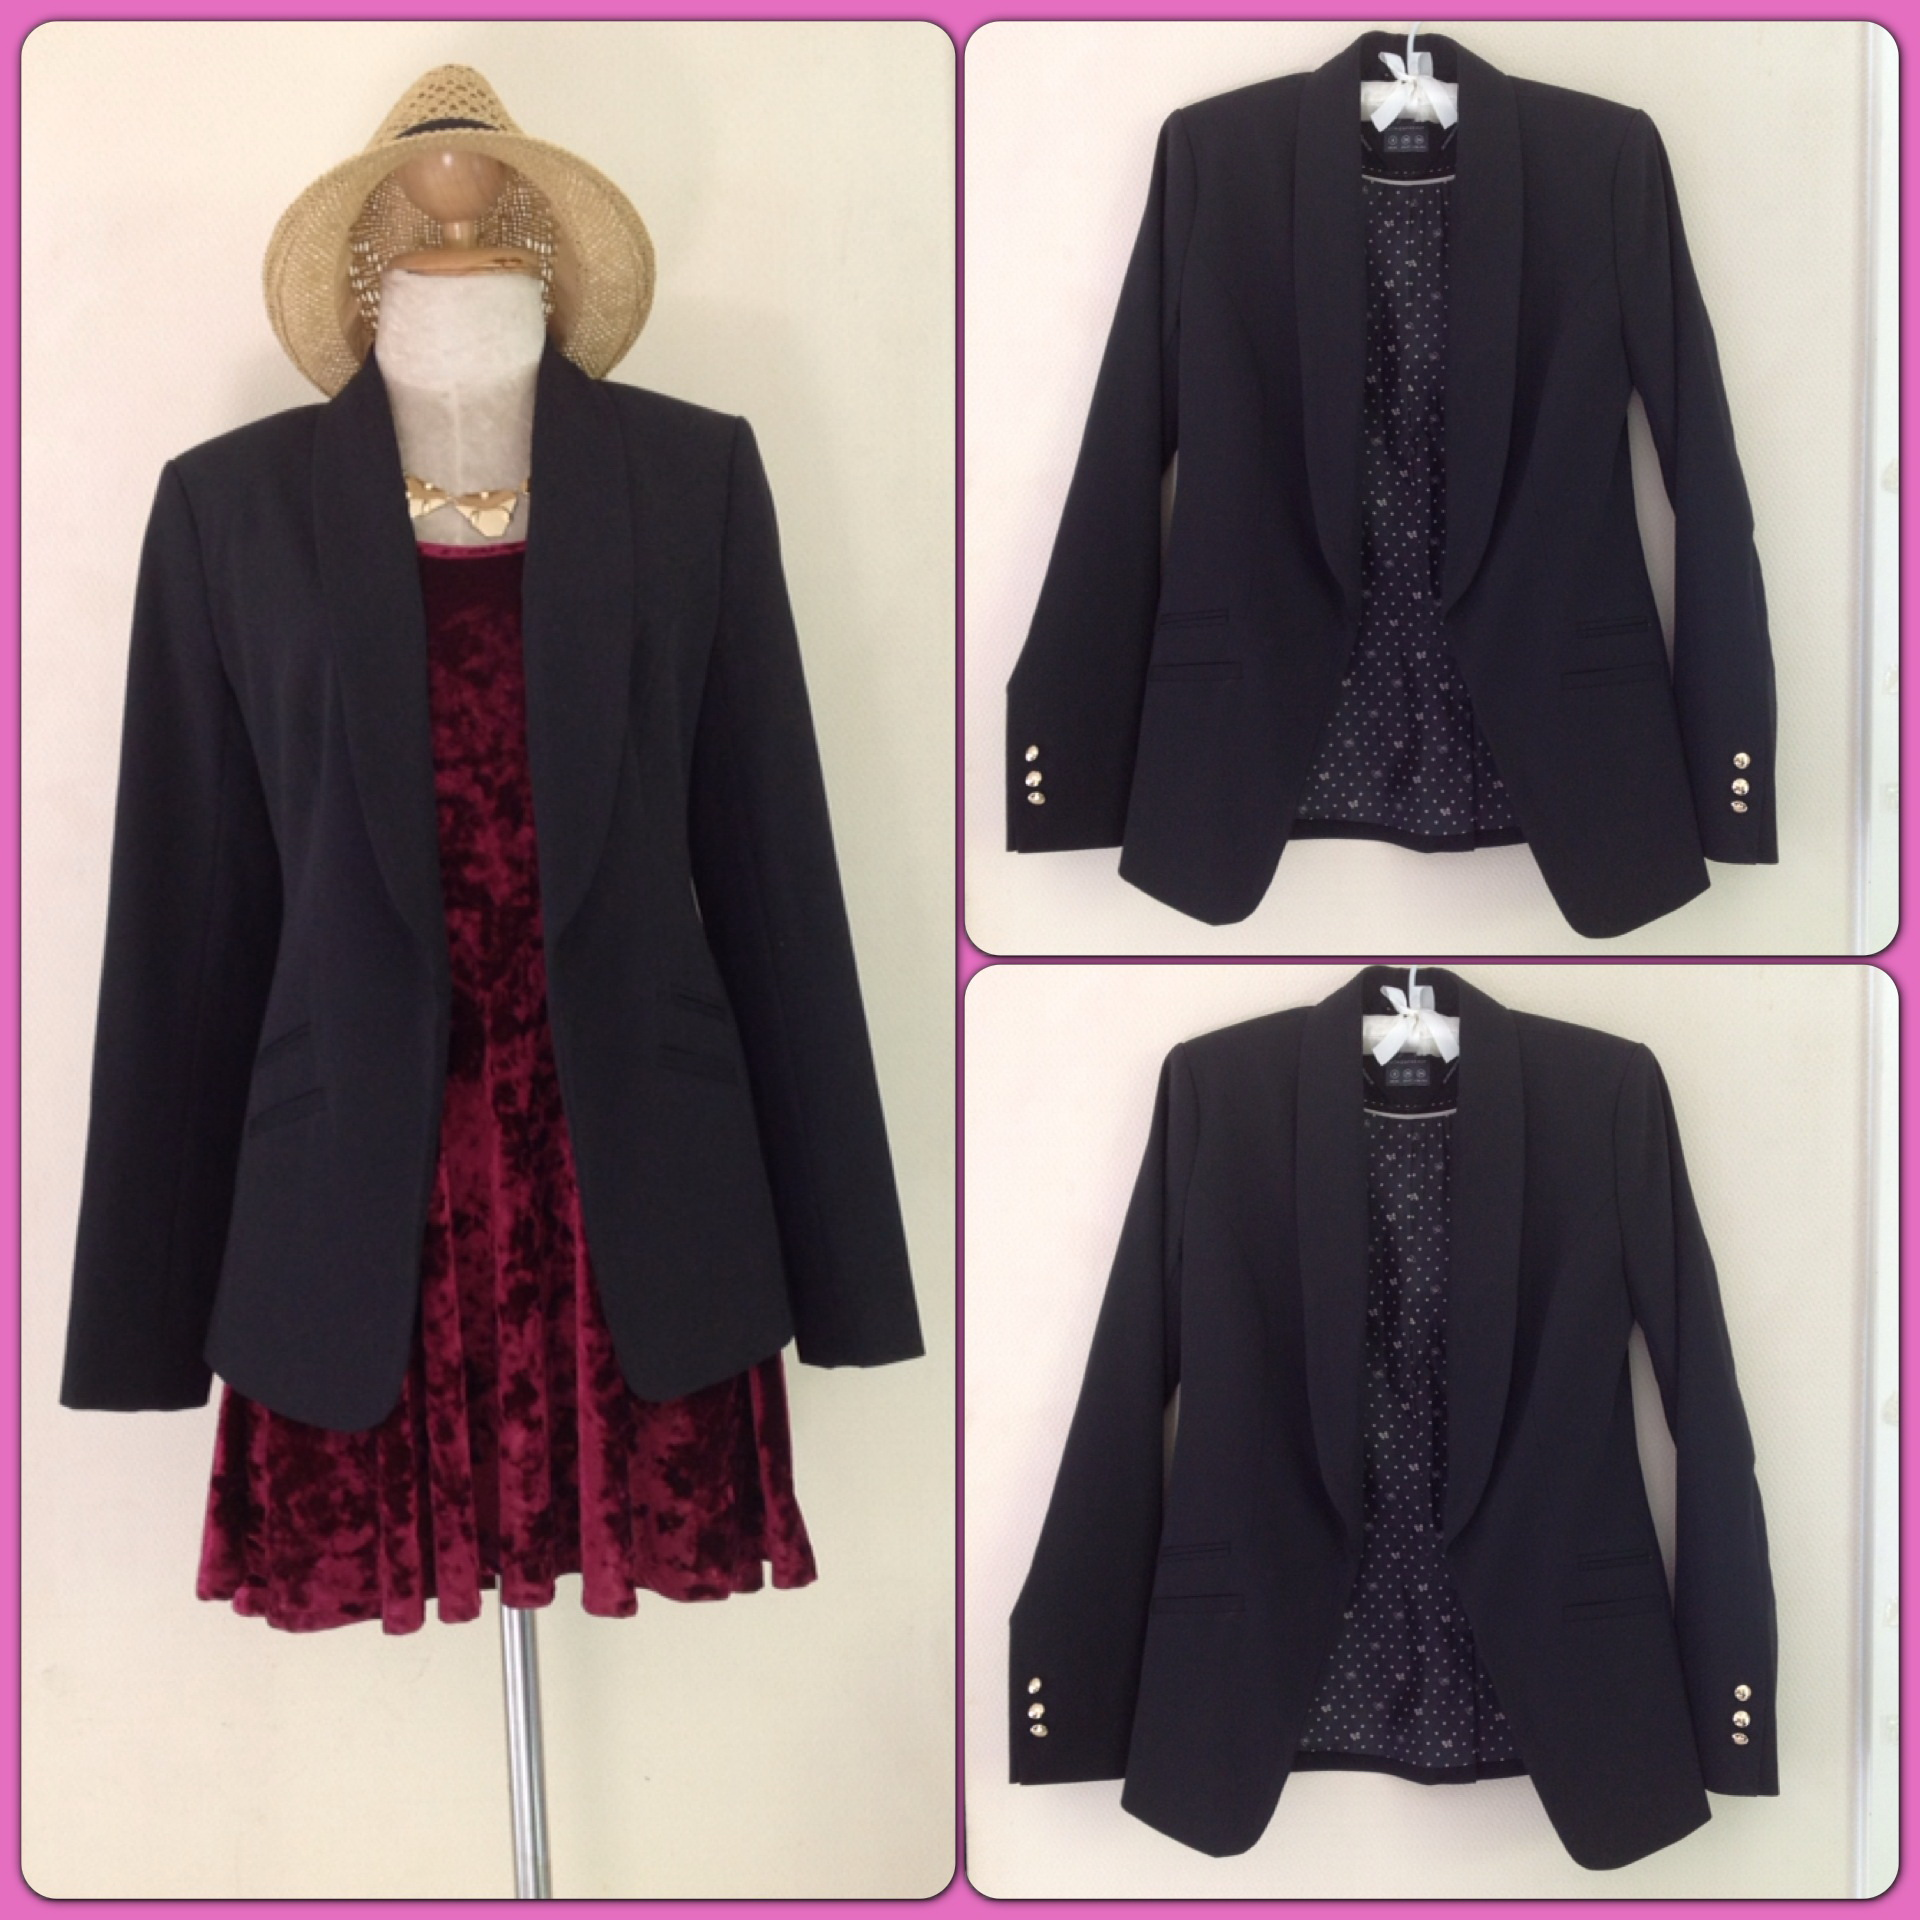 Primark by atmosphere blazer Size uk 8-10